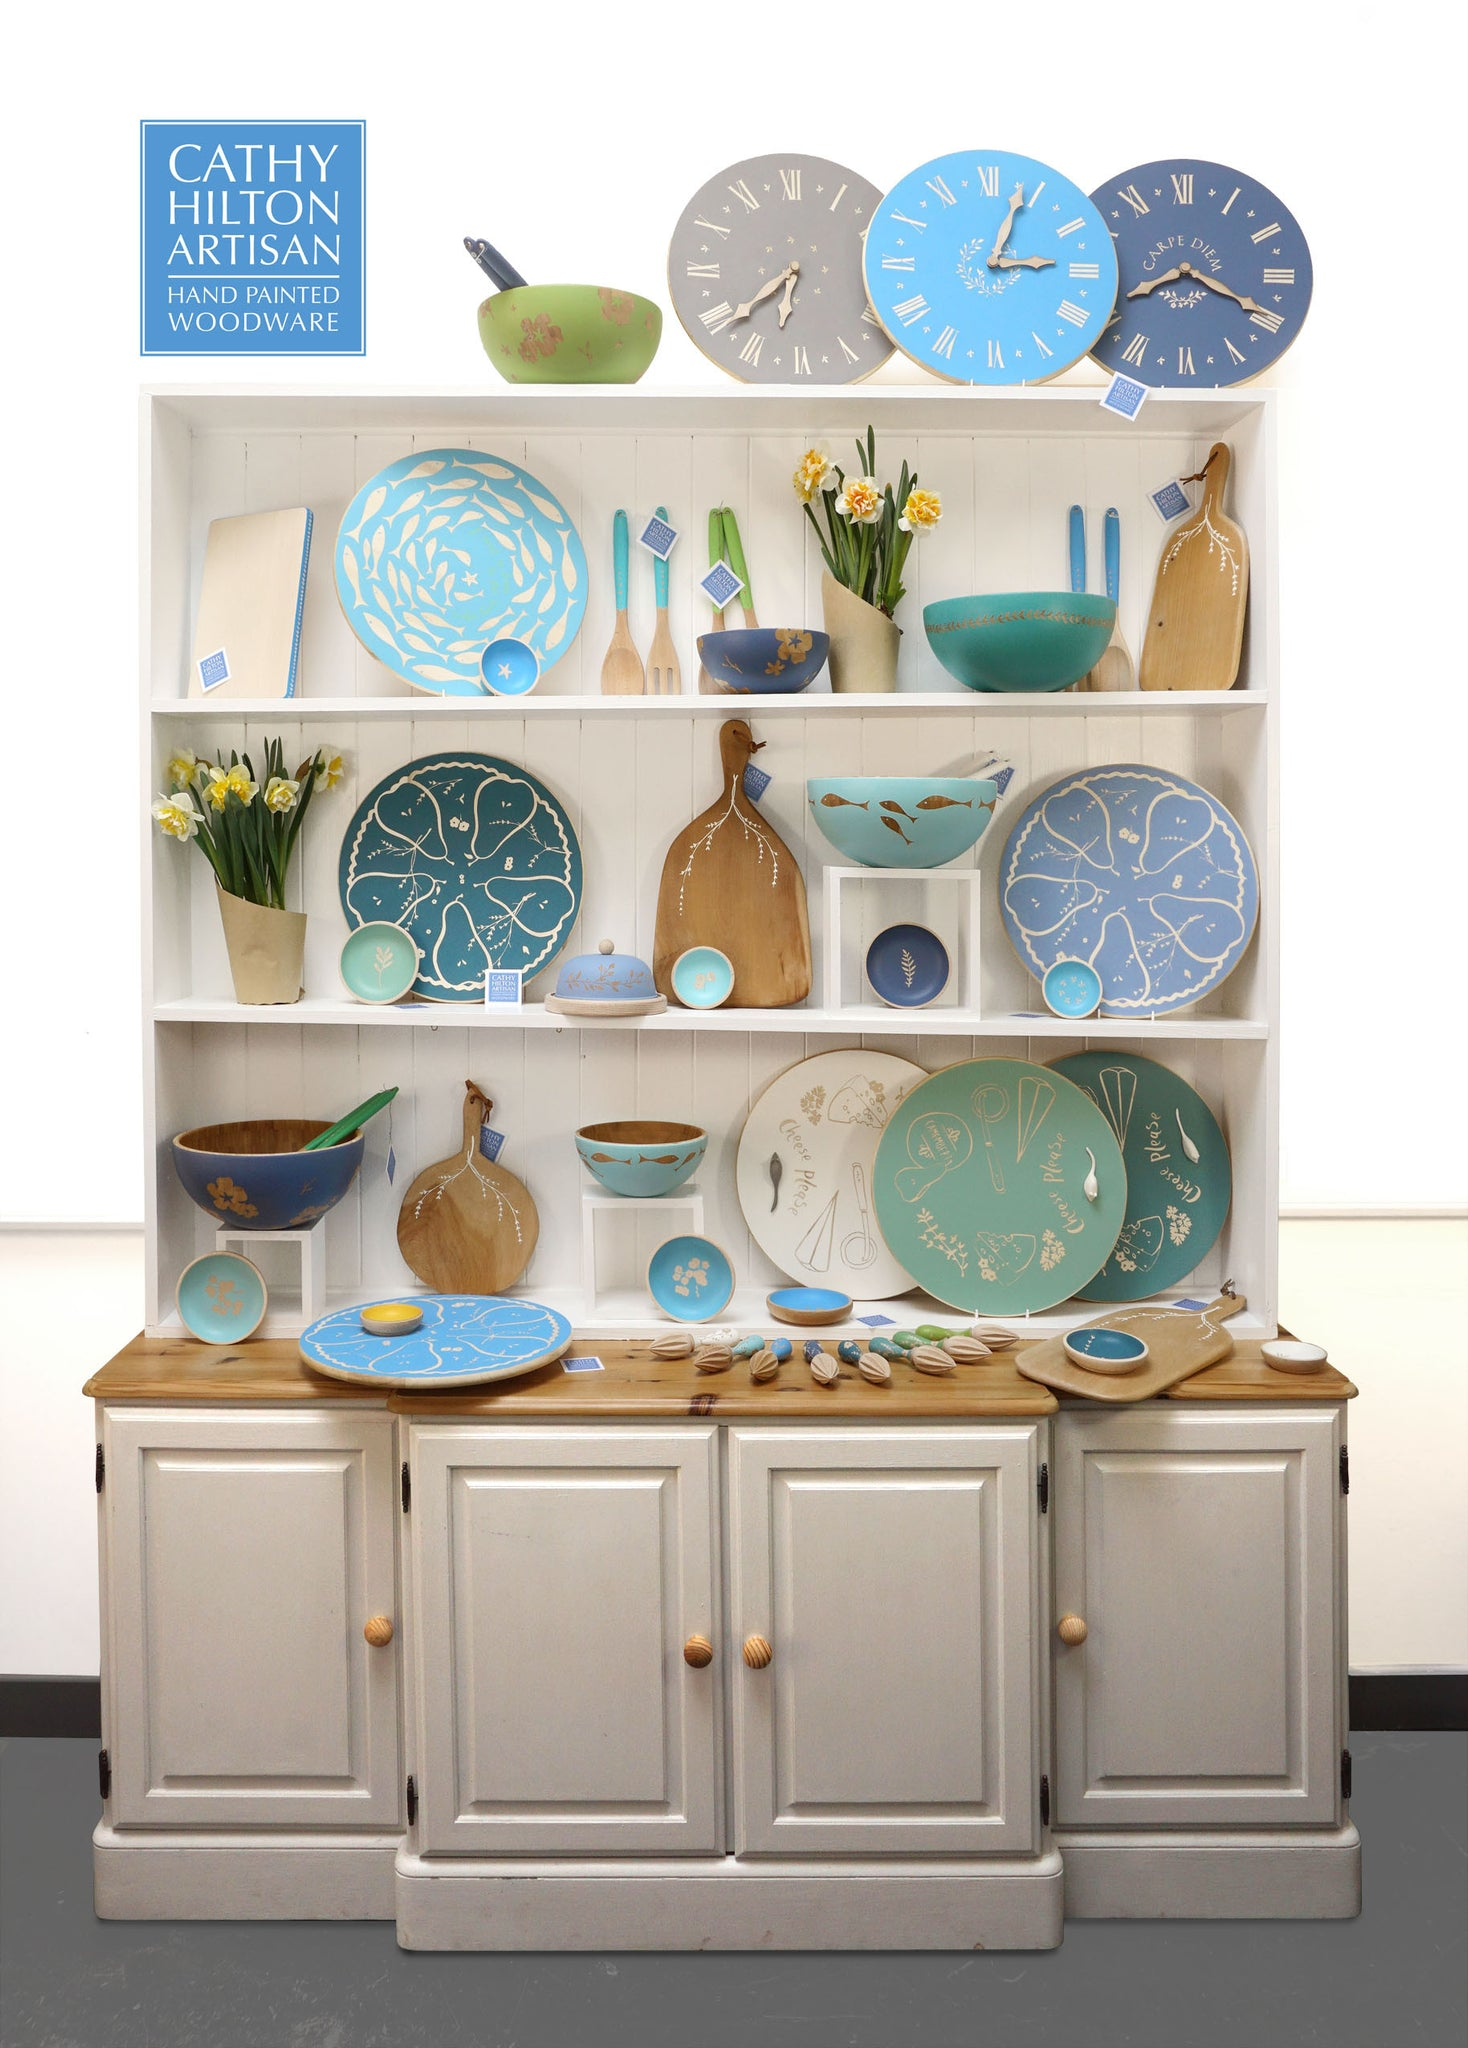 Cathy Hilton Artisan Hand Painted Woodware Collection